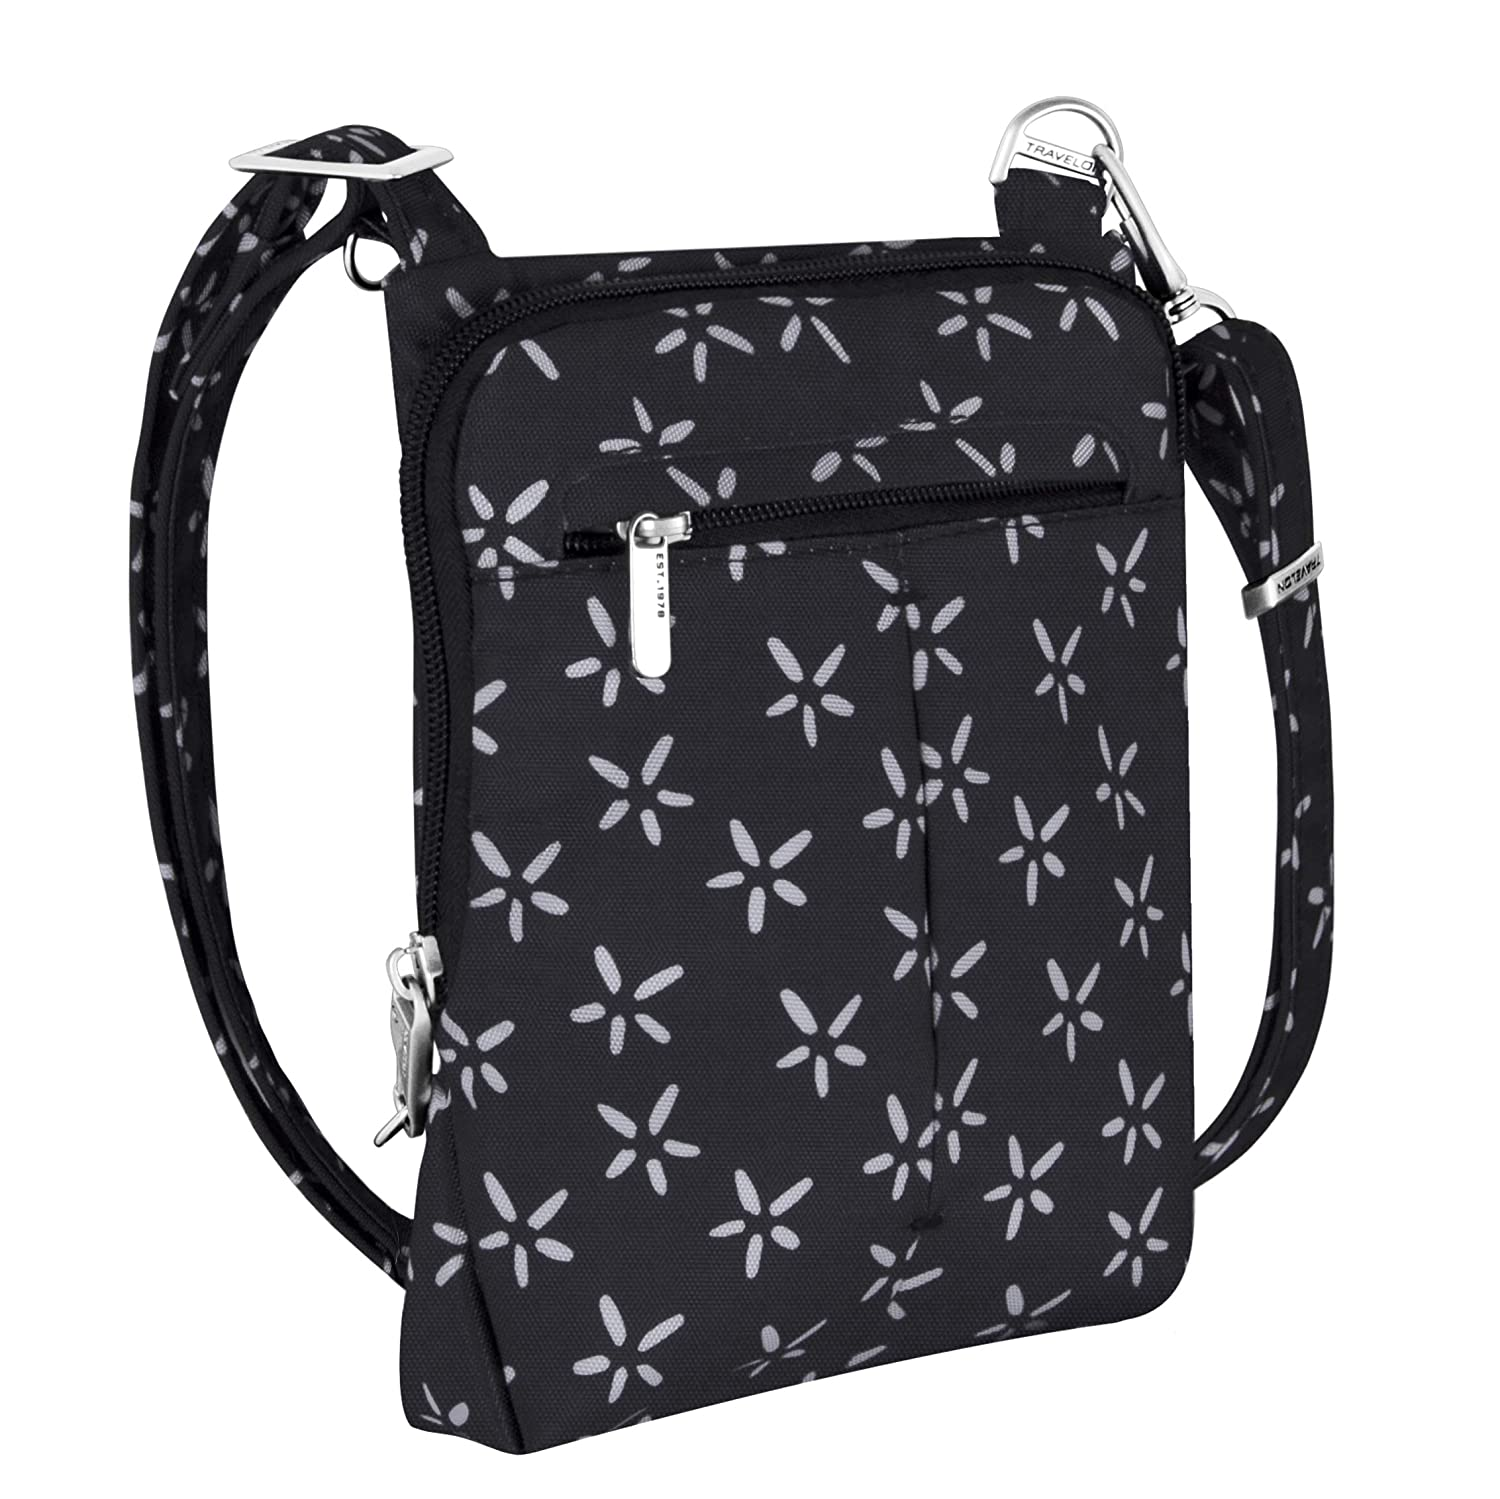 19fc125a9a1e Travelon Anti-Theft Classic Light Mini Crossbody Bag (A B W SMALL FLOWER  PRINT)